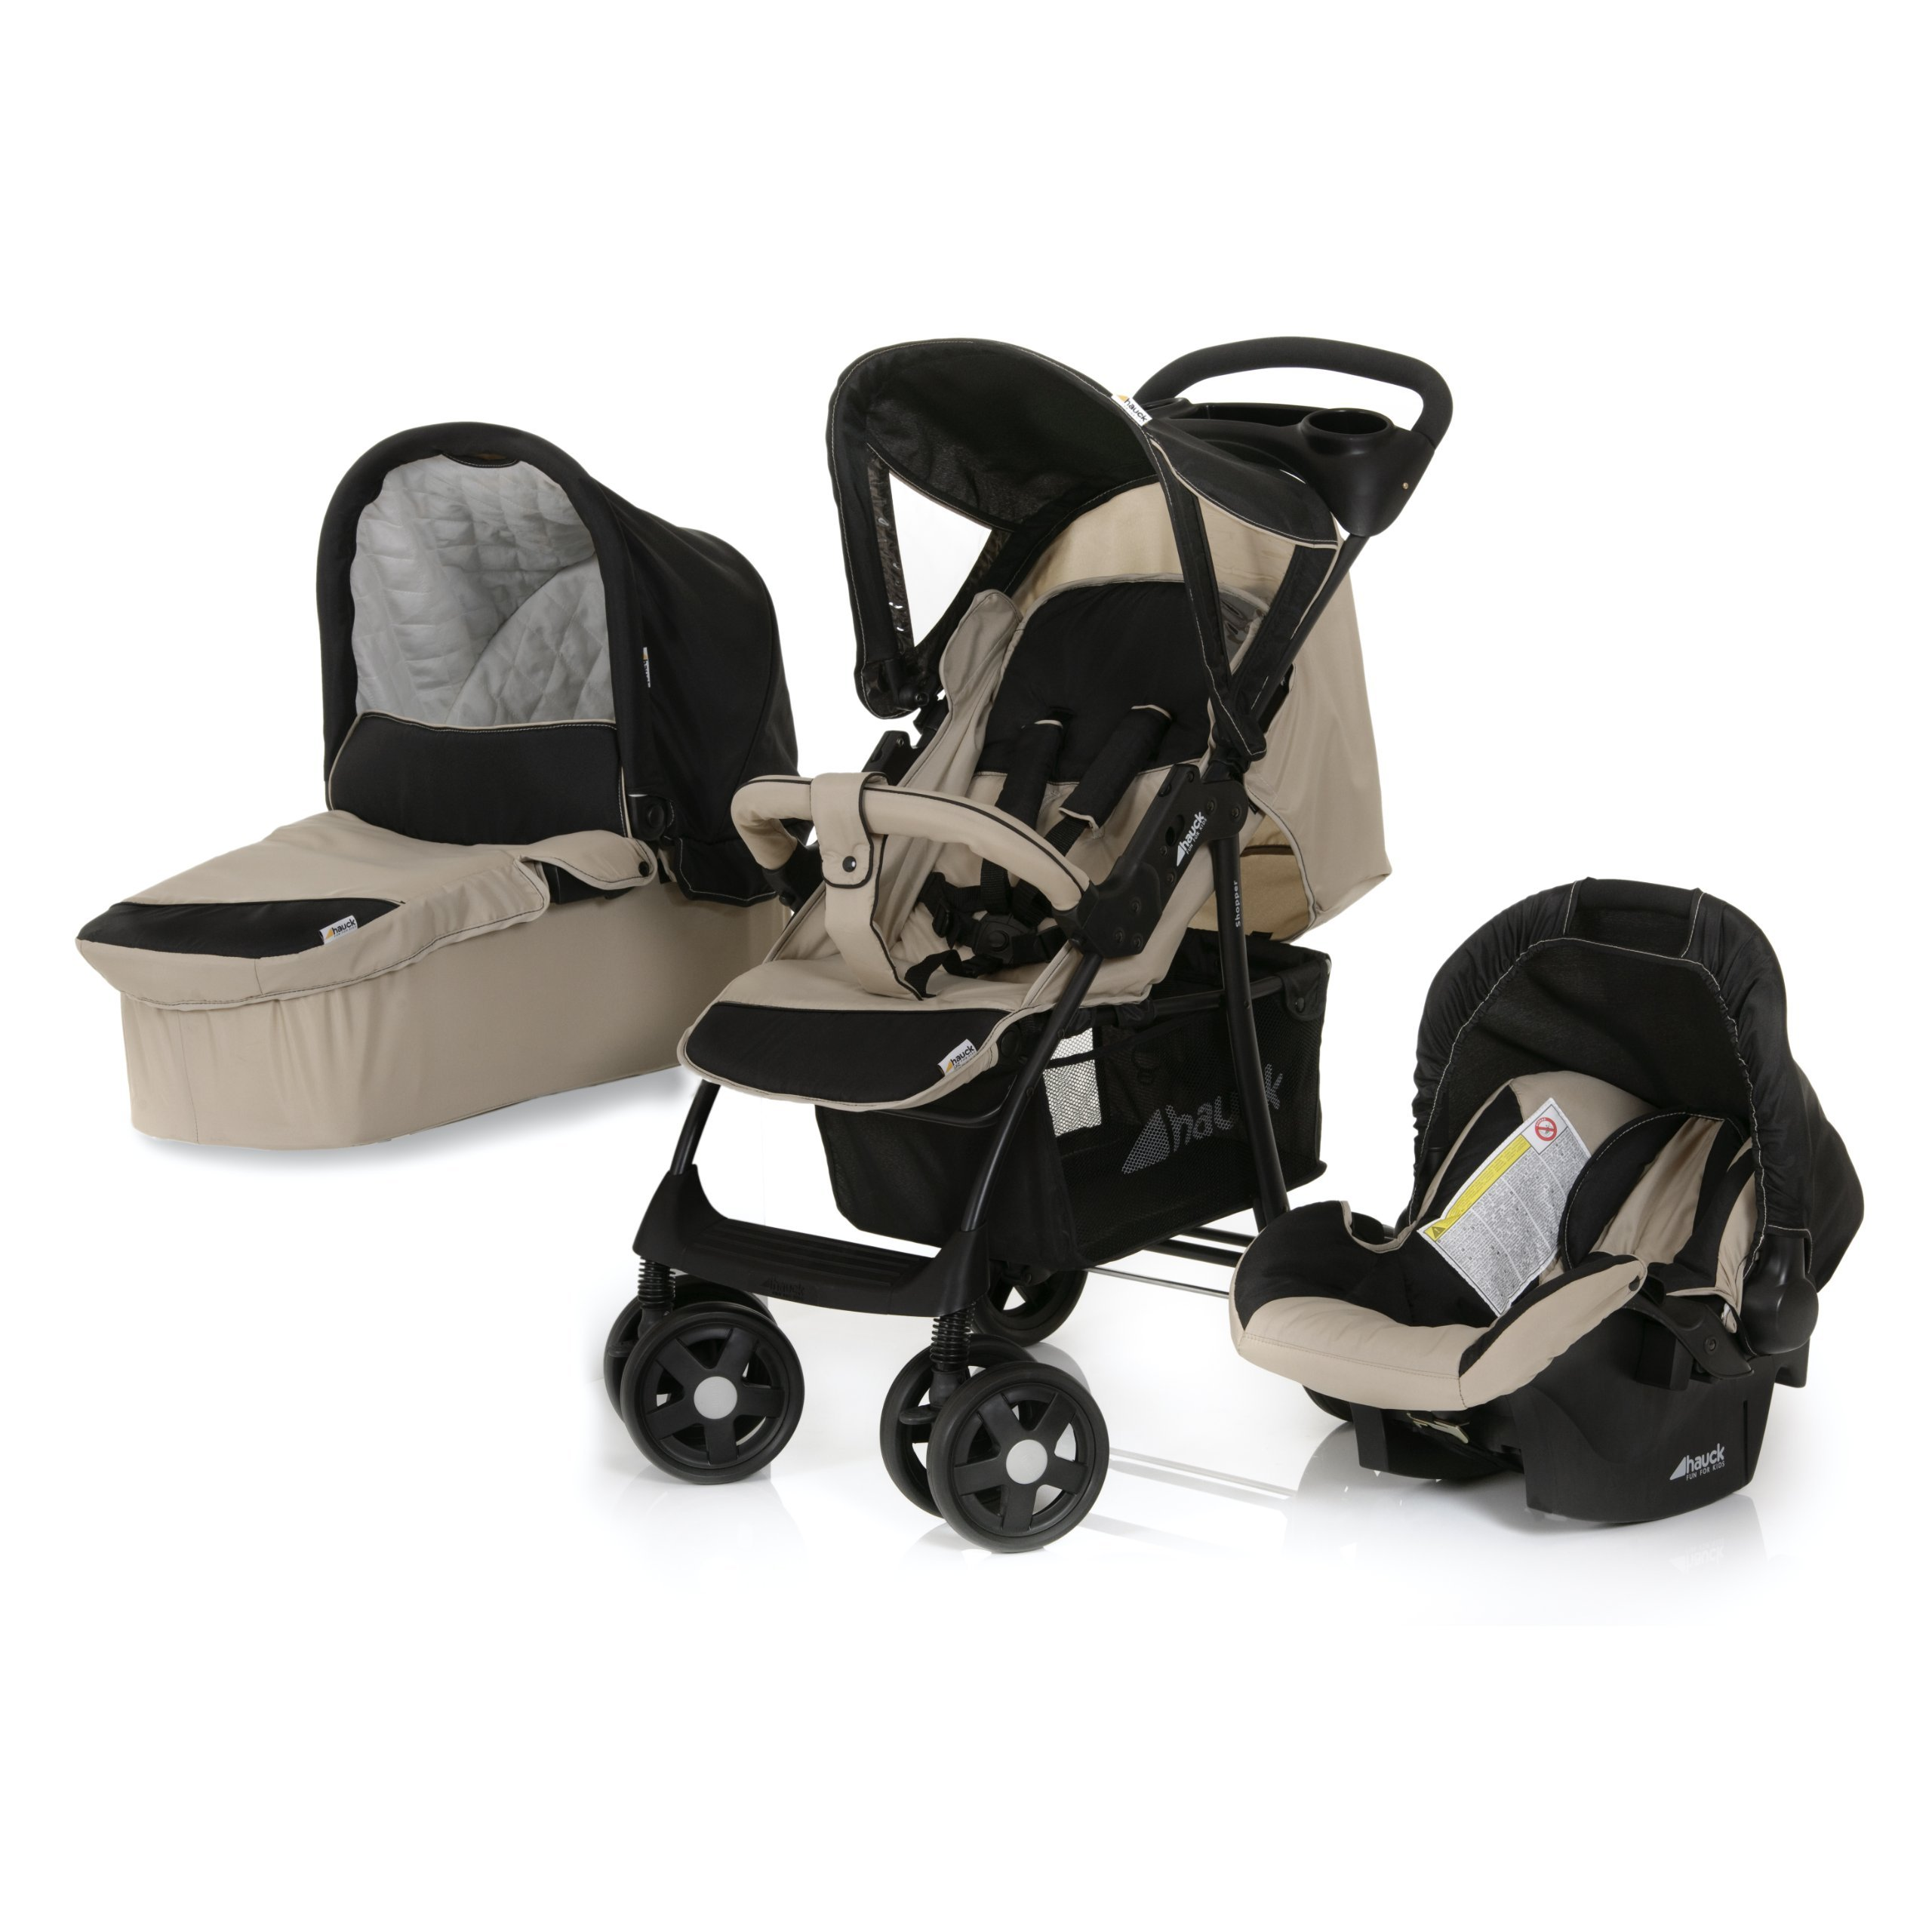 Hauck Shopper Trio Set - Carrito con capazo y grupo 0+, color negro/